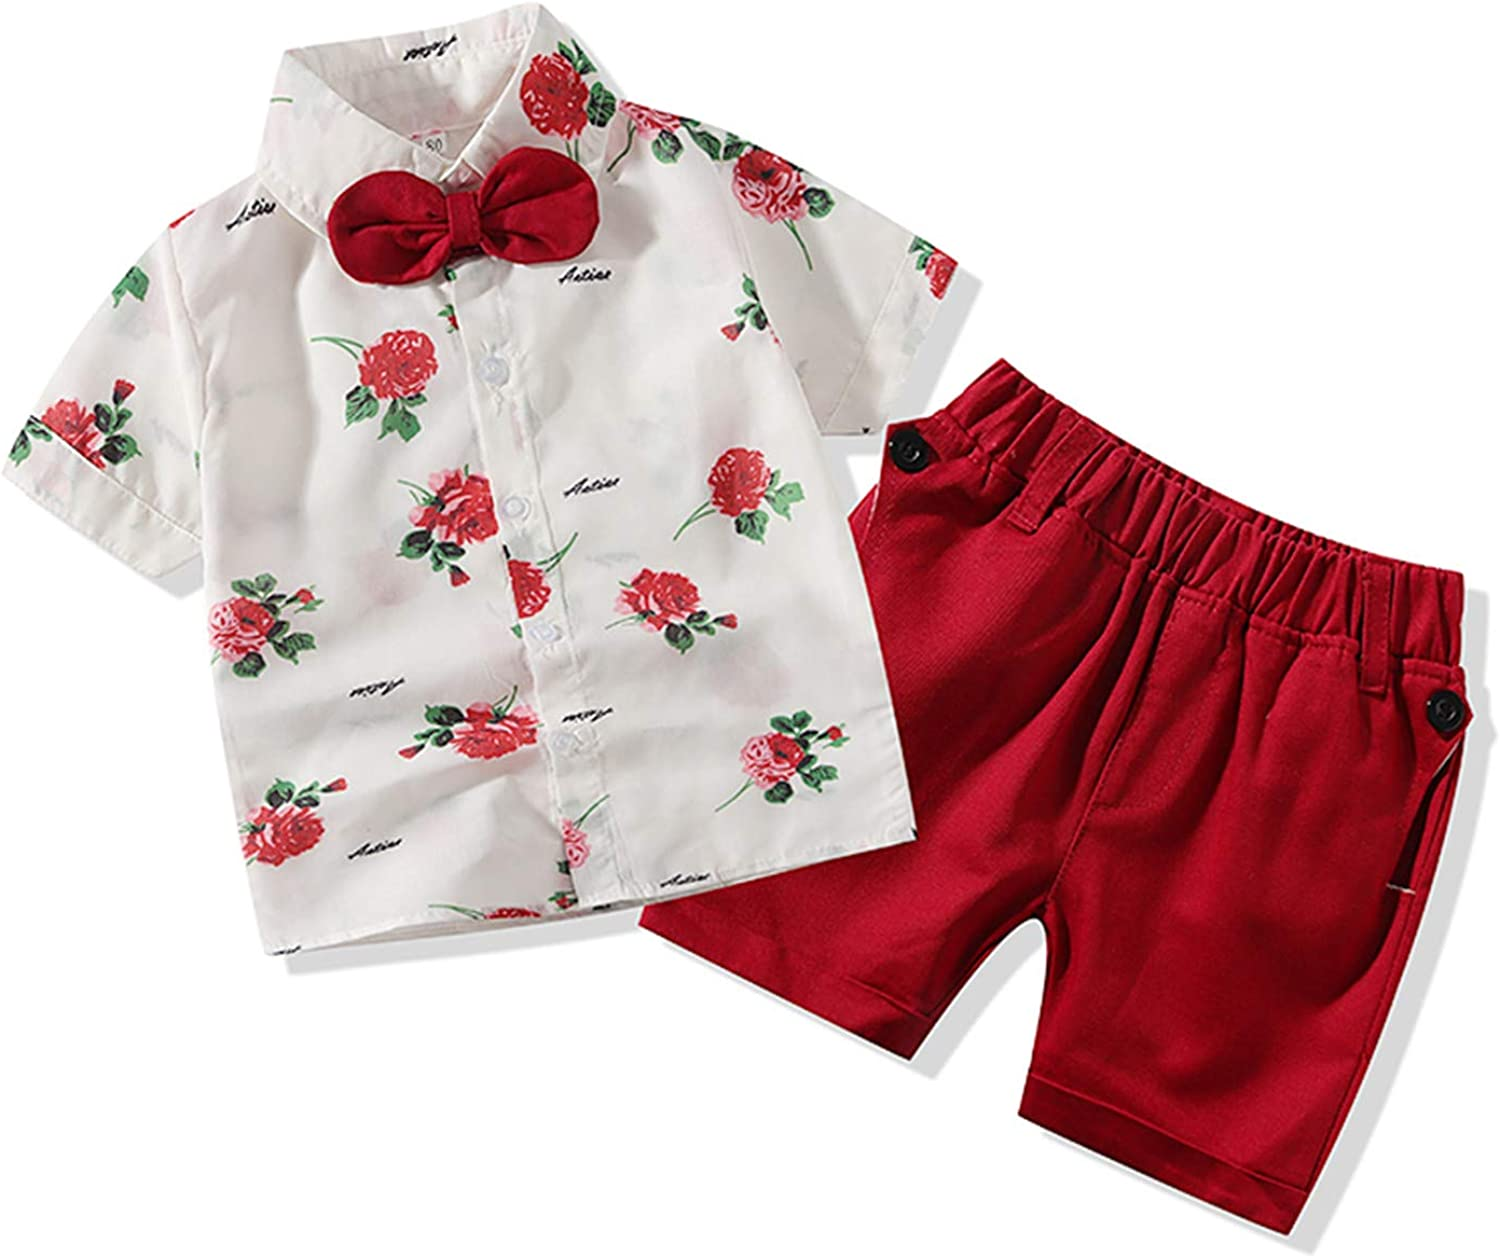 Sale SALE% OFF Gentleman Outfits Suits Infant Max 50% OFF Short B Sleeve Shirt+ Pants Baby